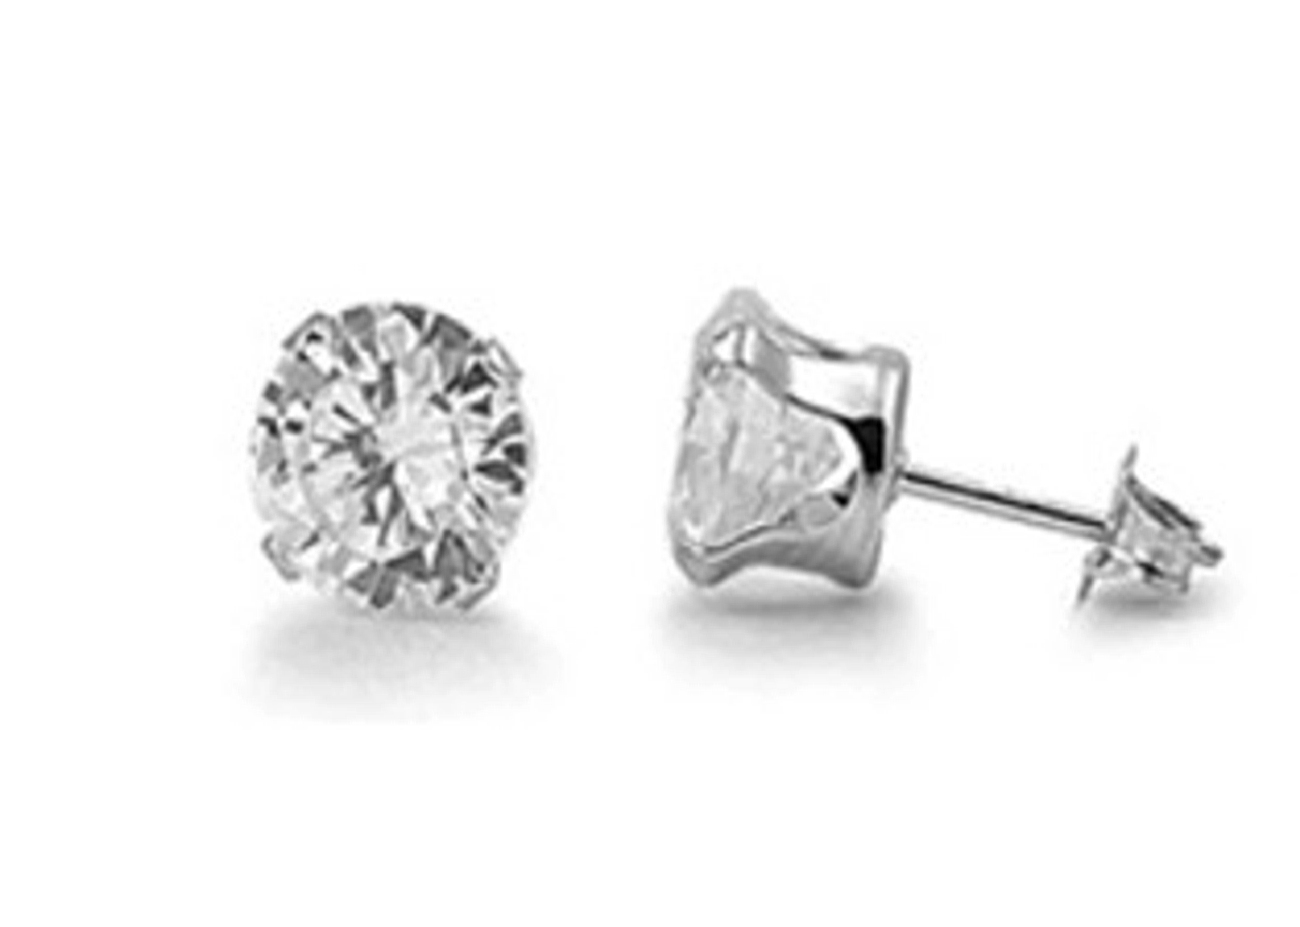 2mm Diameter Round Cubic Zirconia Stud Post Earrings